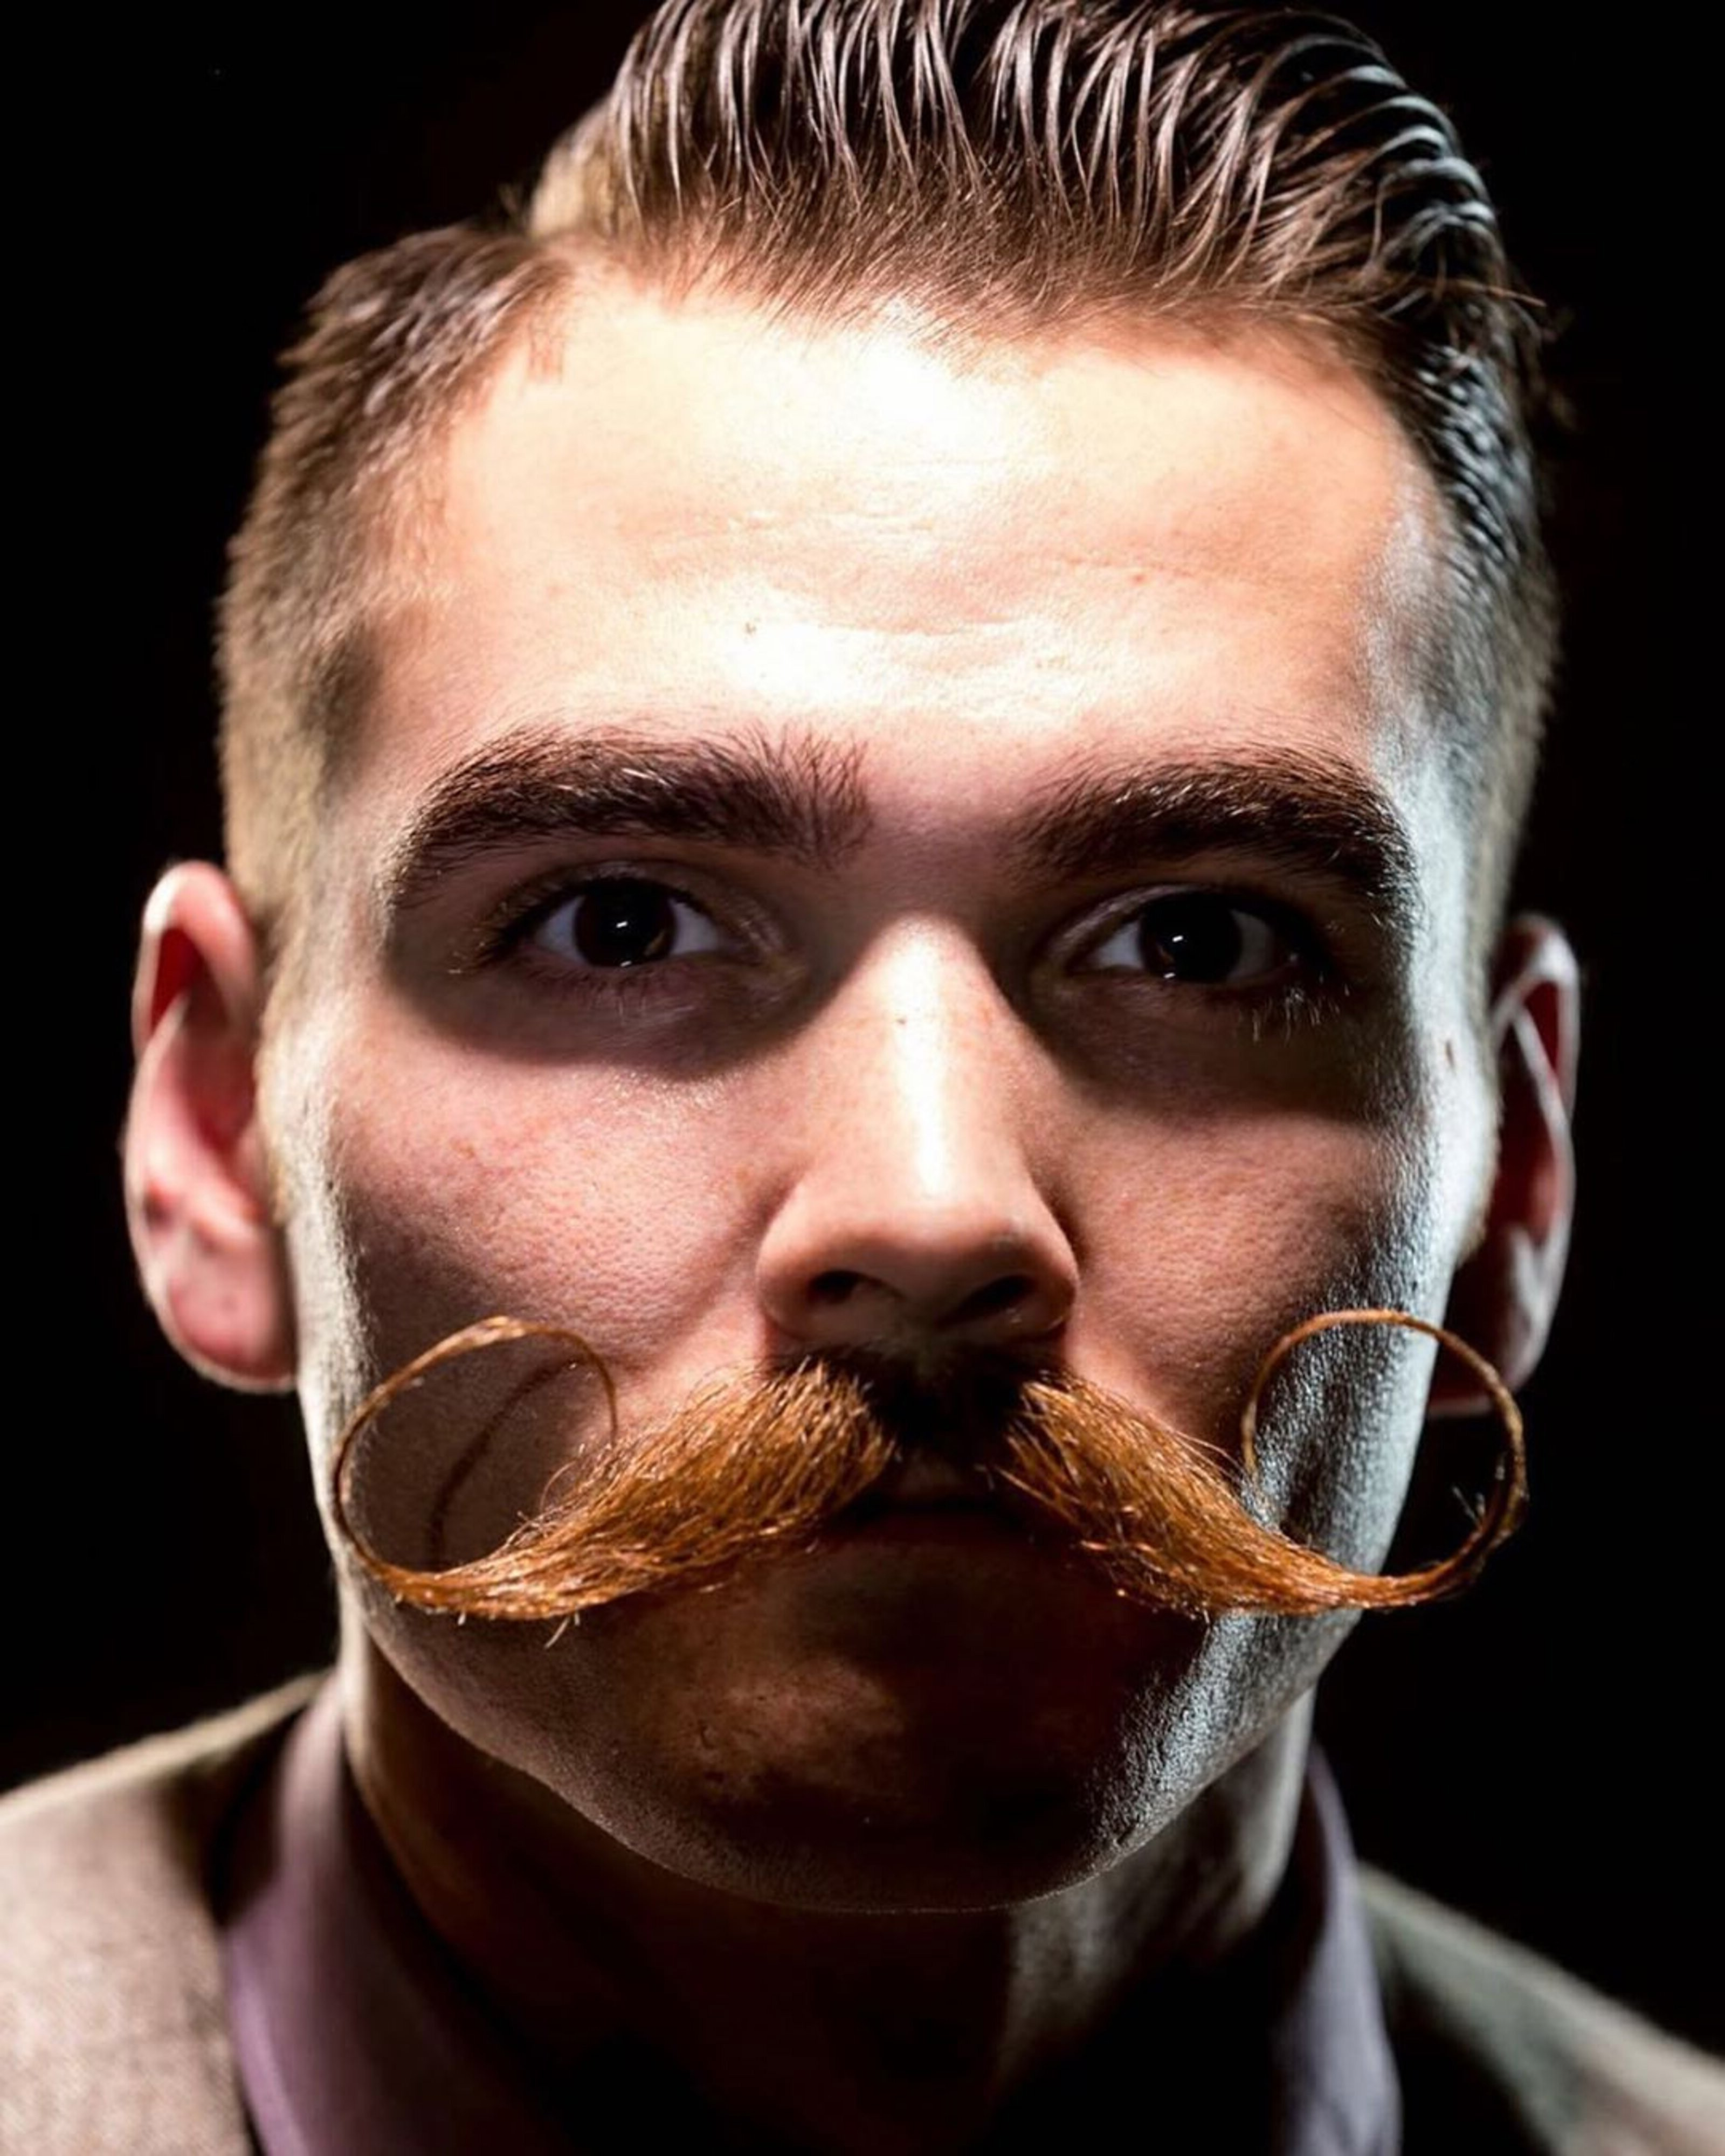 Emilio handlebar mustache for self-confident men.